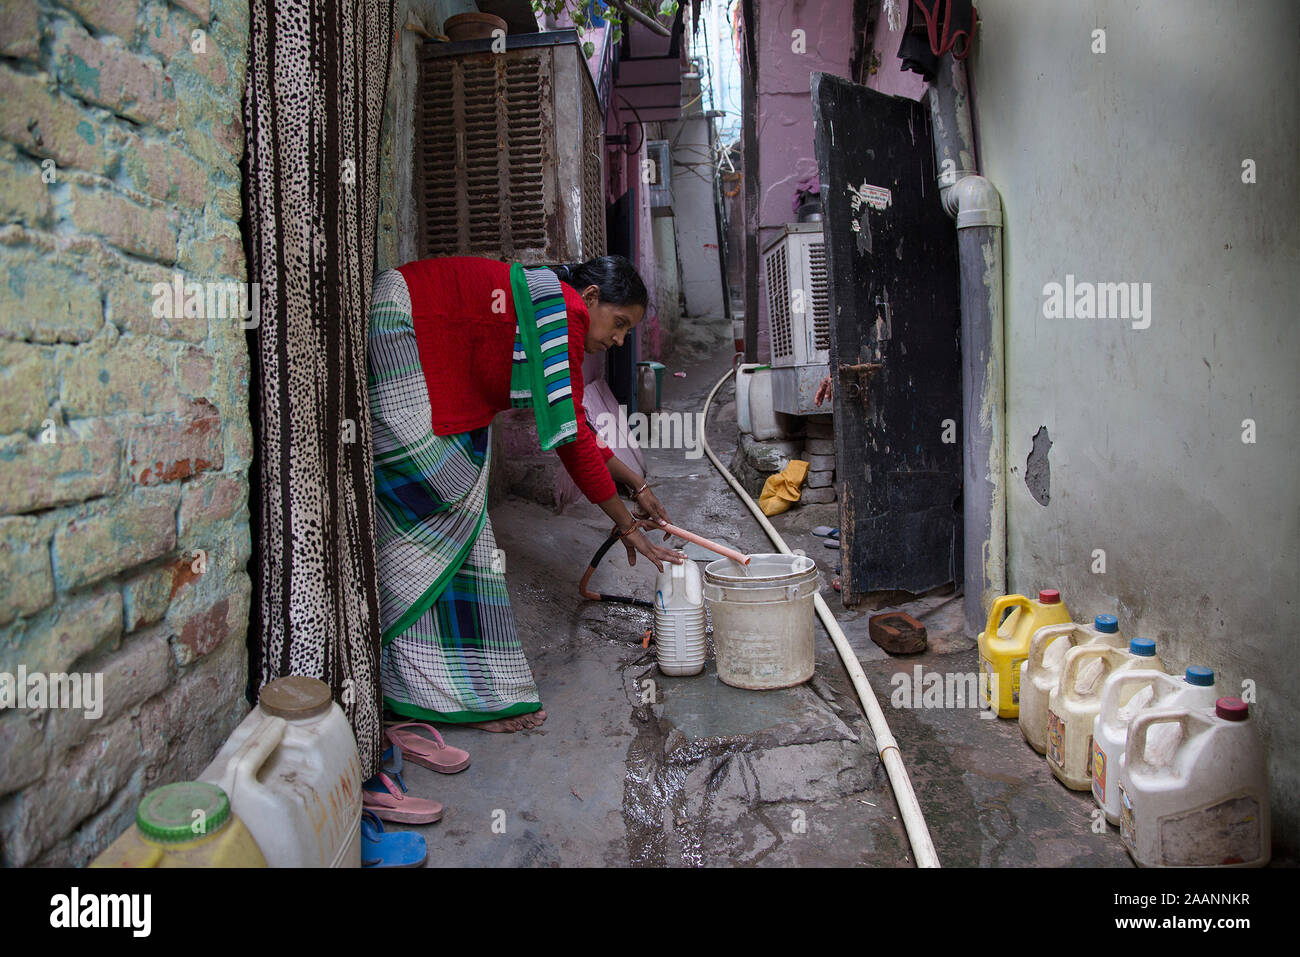 (191123) -- NEW DELHI, Nov. 23, 2019 (Xinhua) -- A woman fills a bucket with water from a tap in New Delhi, India, Nov. 23, 2019. Days after India's federal government rankings on tap water showed samples taken from the capital city Delhi have failed on all parameters, the local authorities Wednesday said it would collect over 3,000 fresh samples from across the city for quality check. The federal government's consumer affairs ministry last week said 11 drinking water samples drawn from various places in Delhi did not comply with the requirements of the Bureau of Indian Standard and failed o Stock Photo